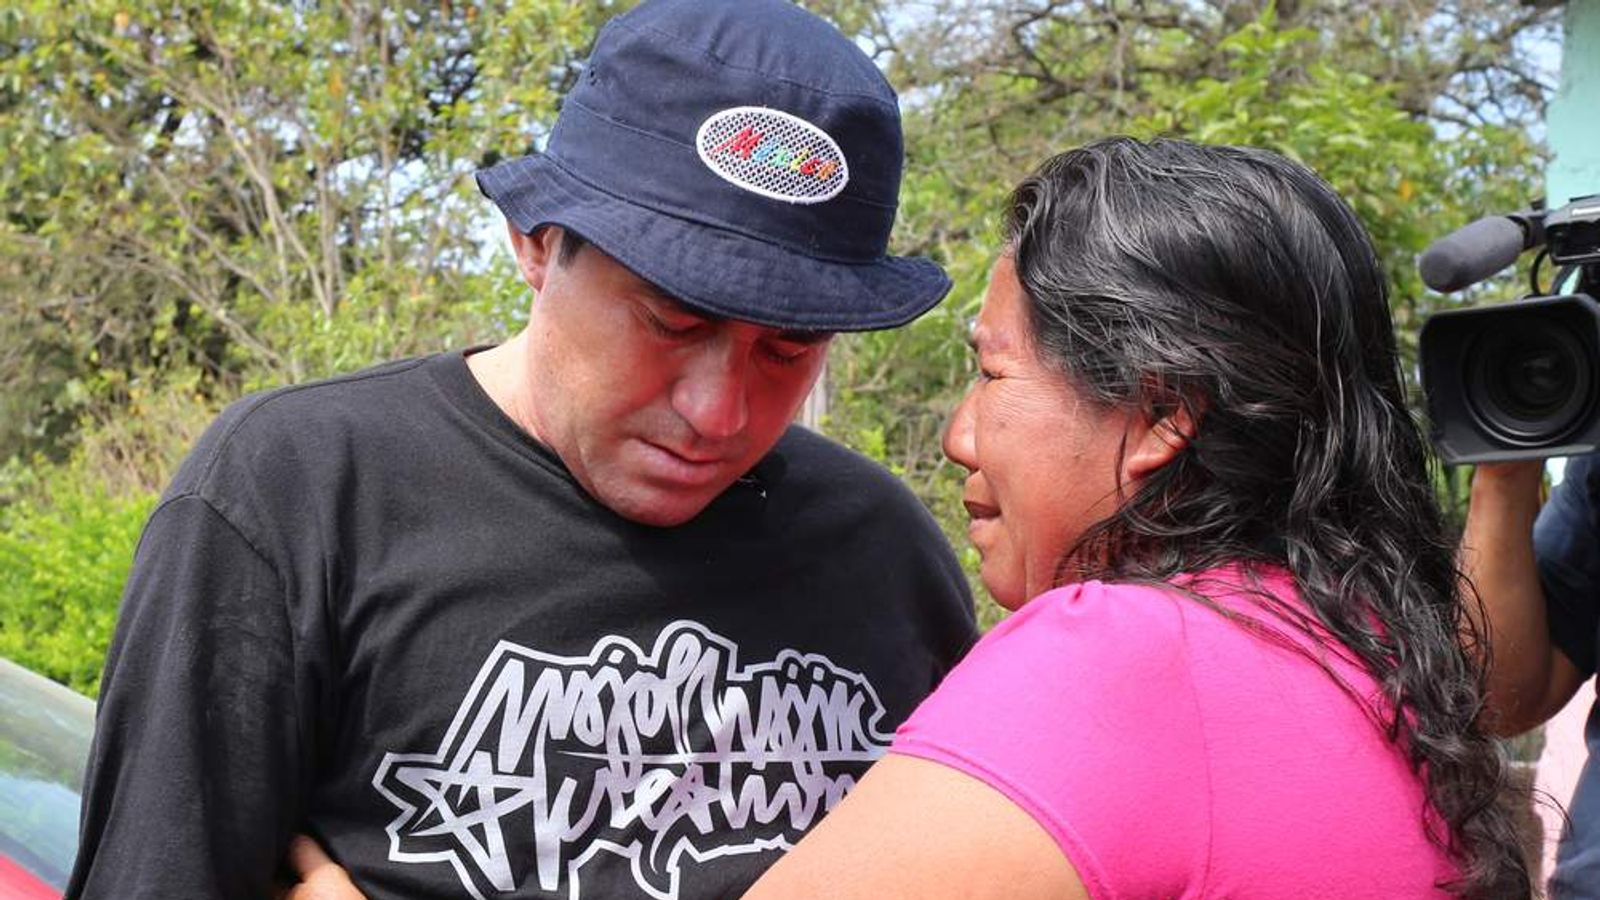 Salvadorean castaway Jose Salvador Alvarenga (L) greets Roselia Diaz (R), mother of dead castaway Ezequiel Cordoba